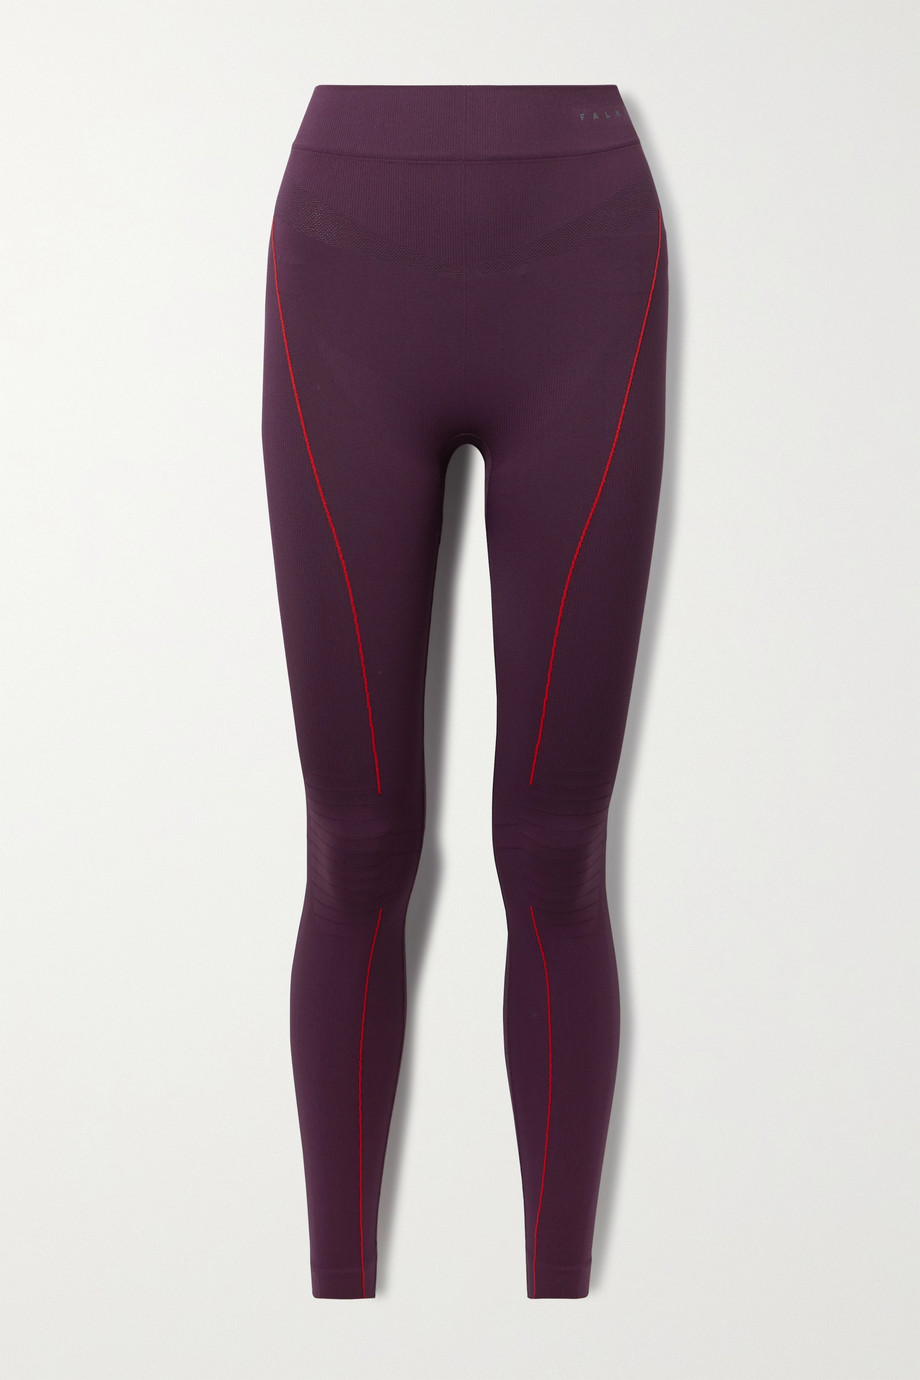 FALKE ERGONOMIC SPORT SYSTEM Stretch-knit leggings